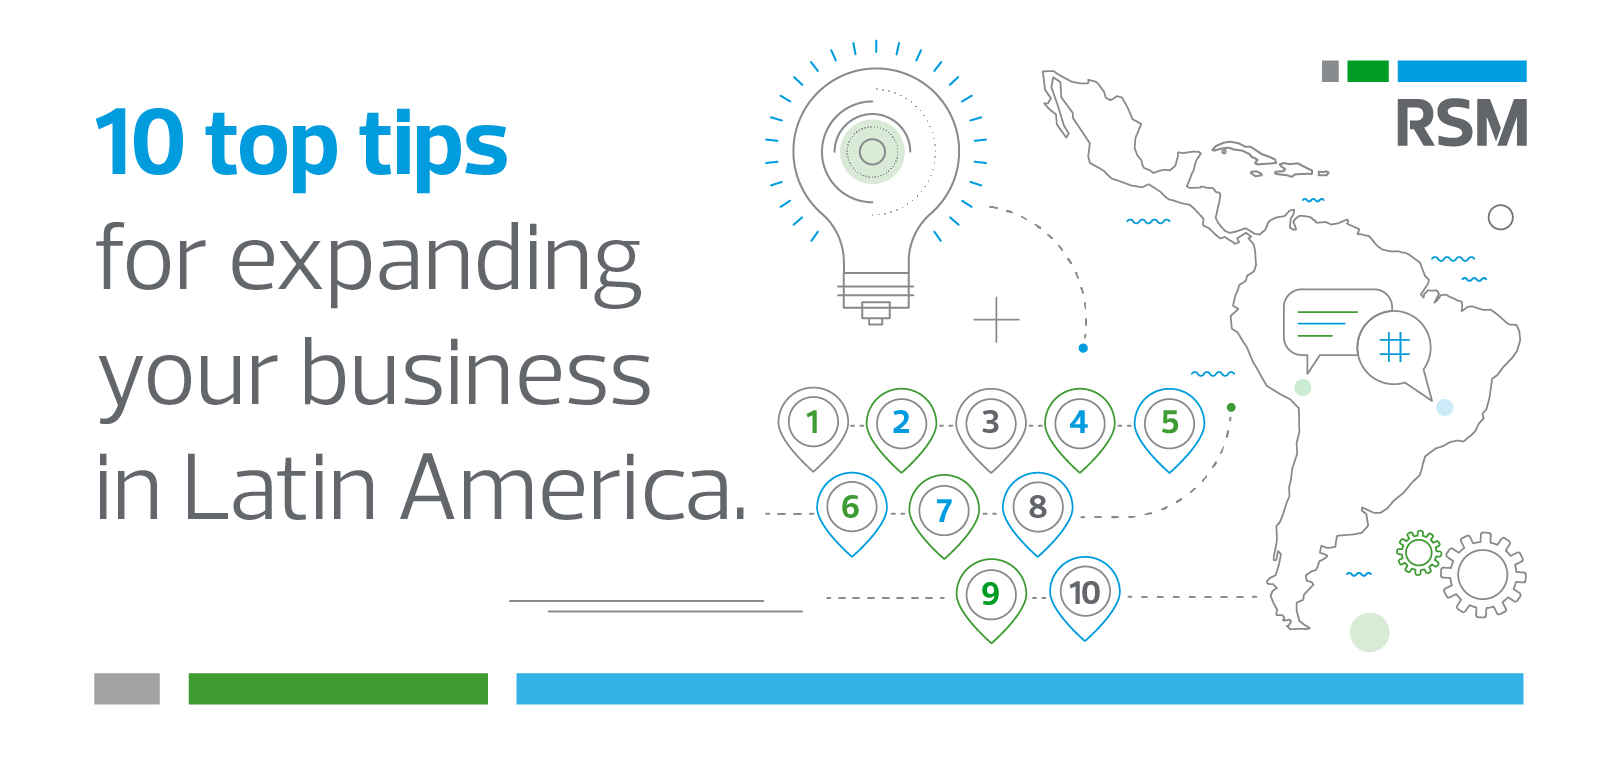 public://media/10_top_tips_for_expanding_your_business_in_latin_america_article_english_770pxx367px.png